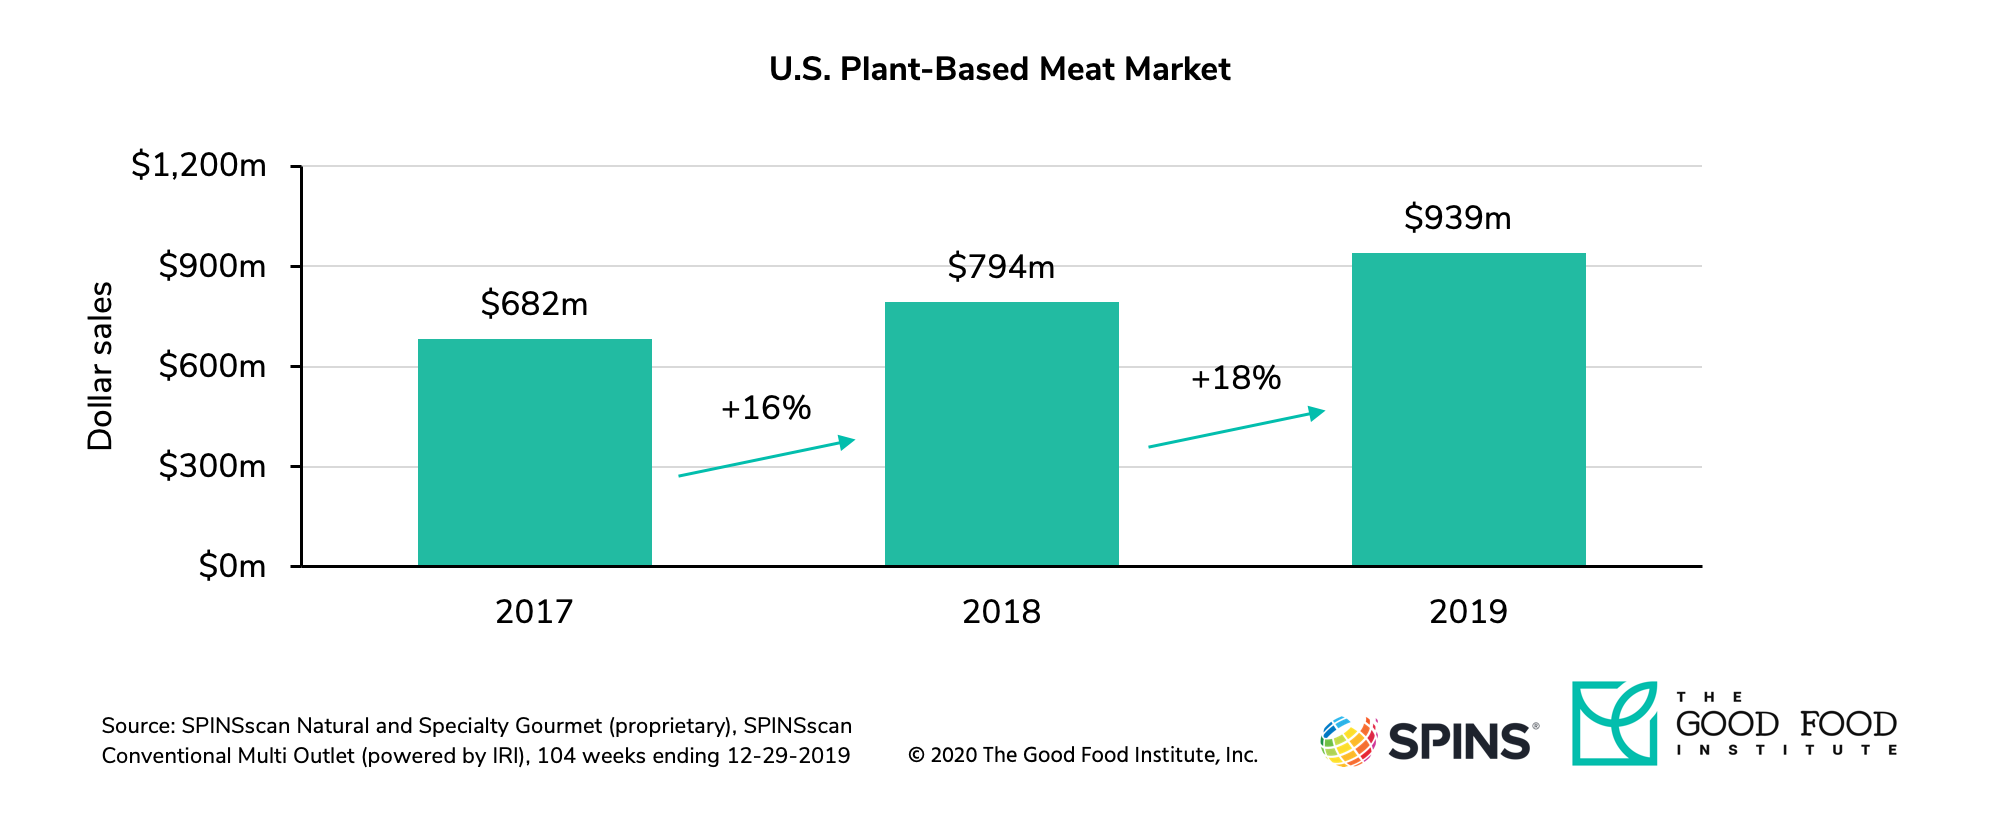 Plant-Based Meat Market Growth 2017 to 2019